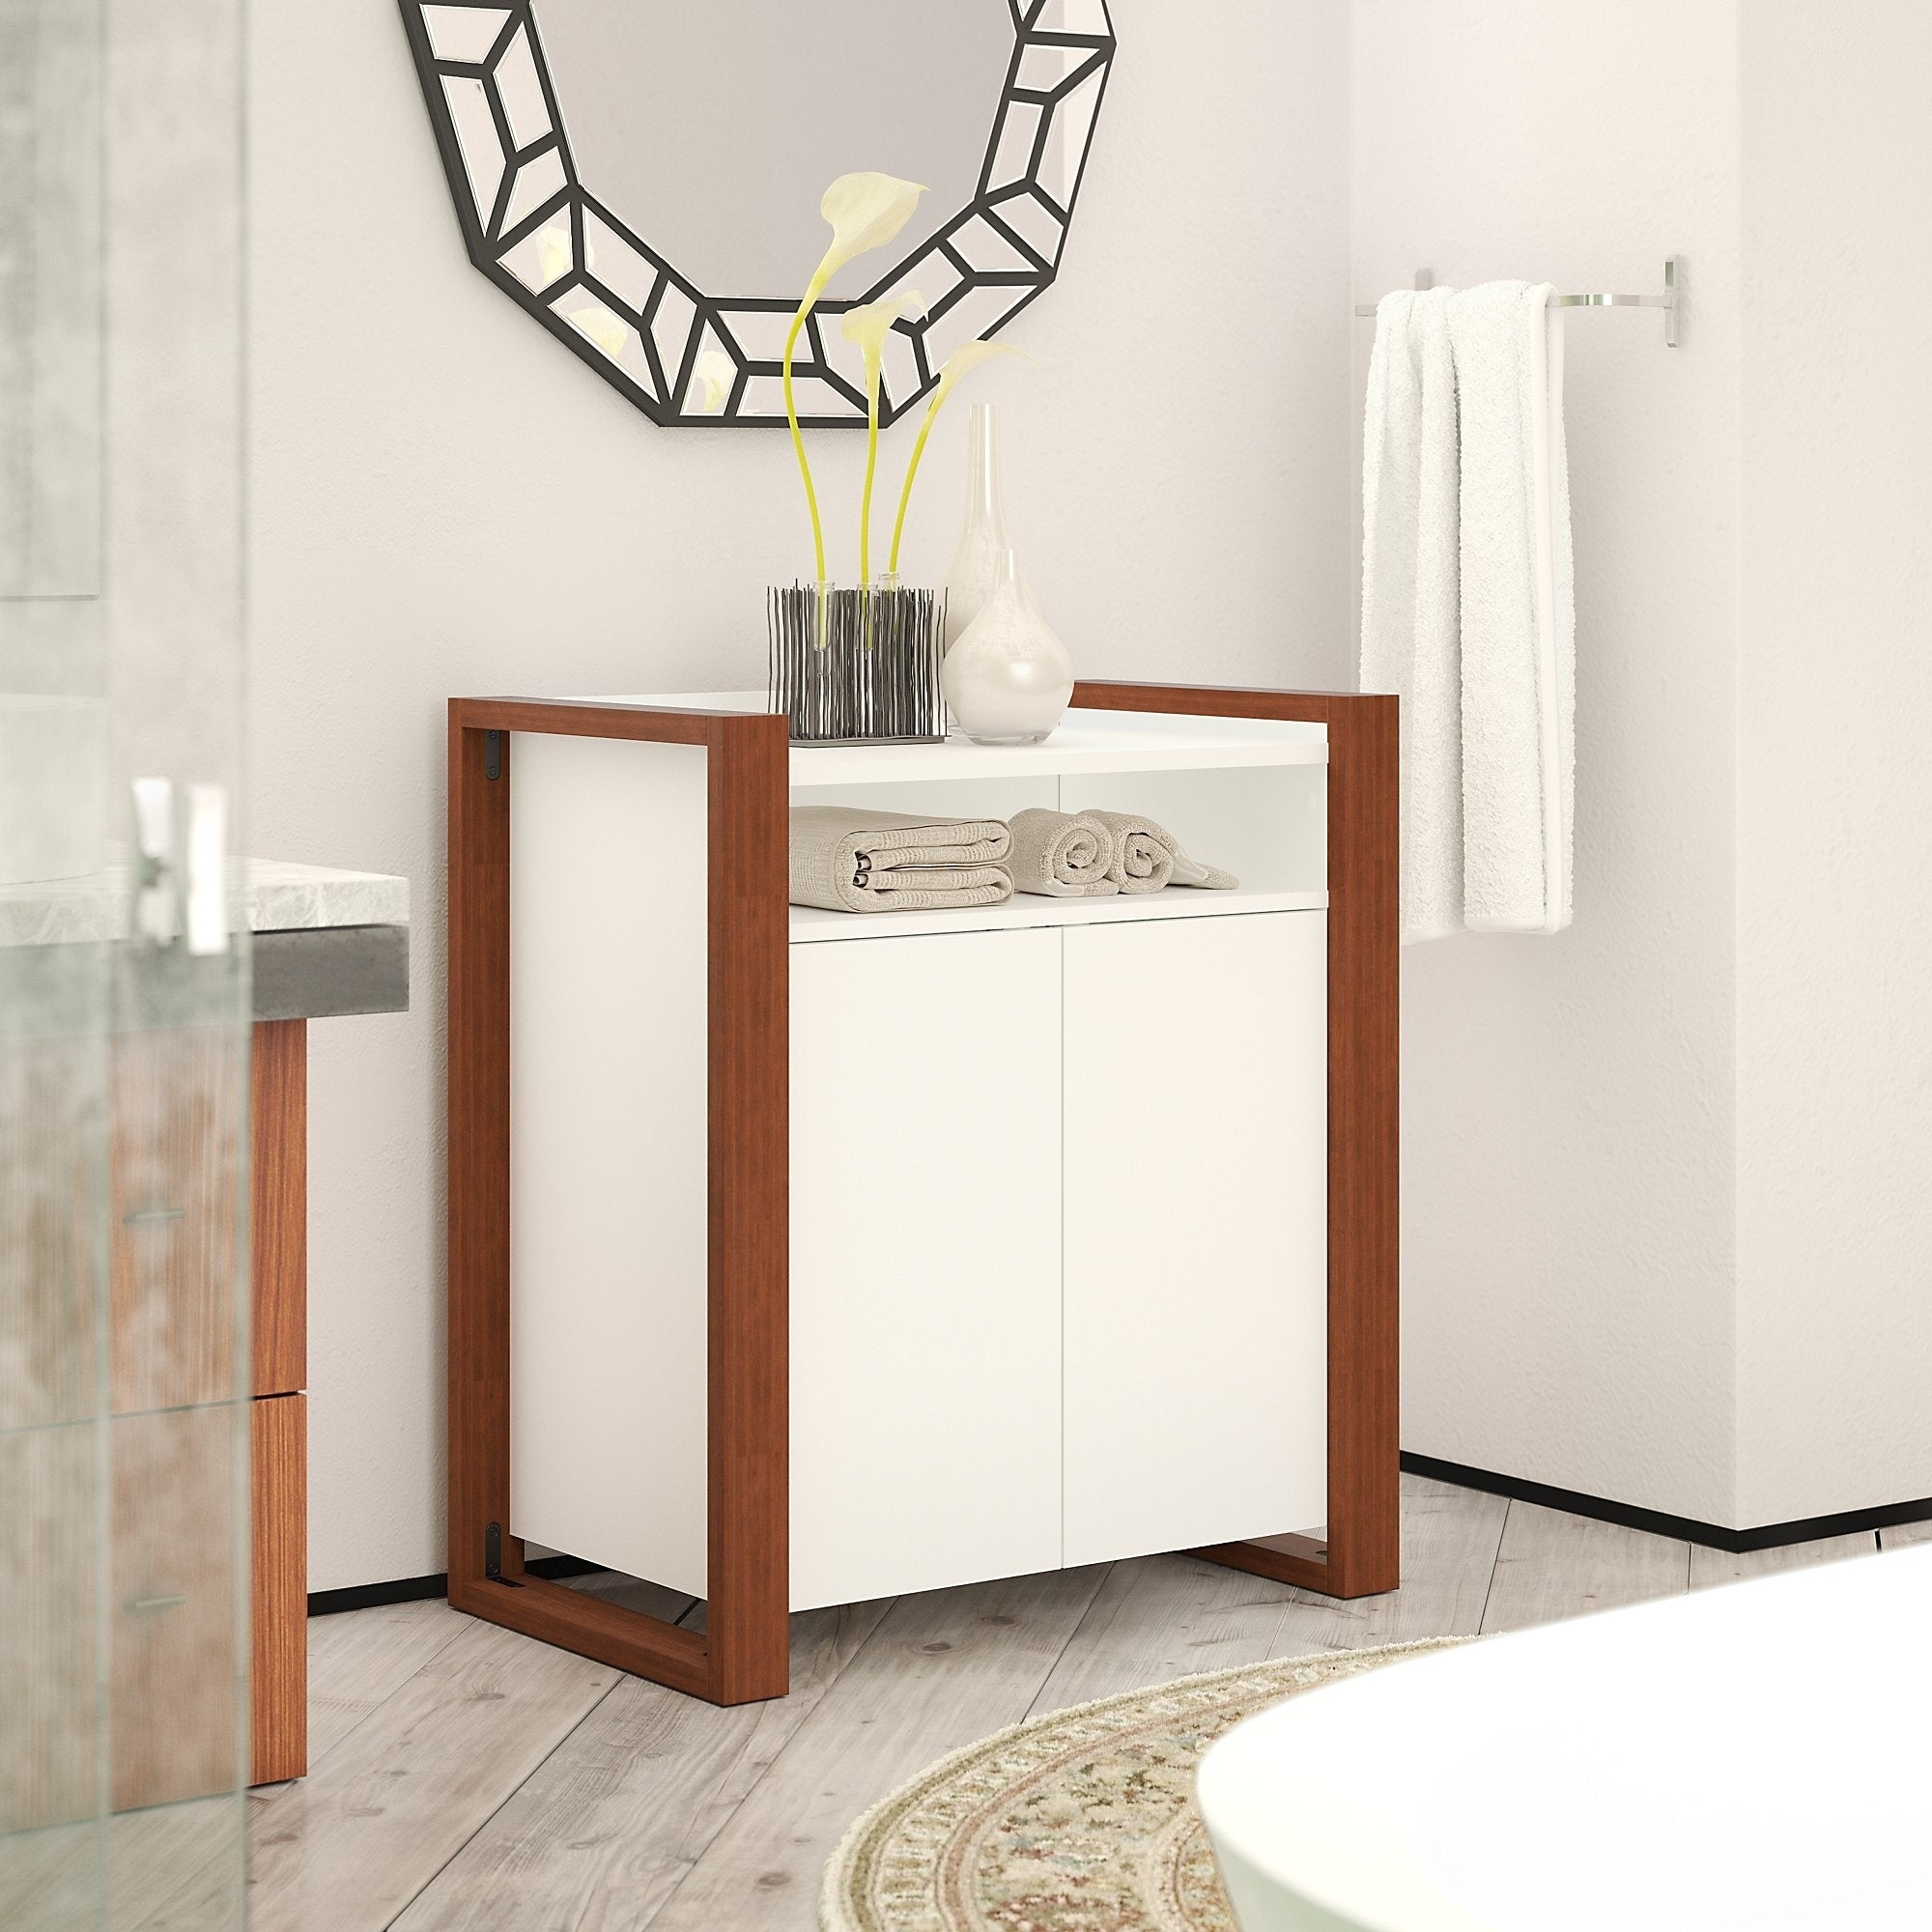 Voss Bathroom Storage Cabinet from kathy ireland Home by Bush Furniture